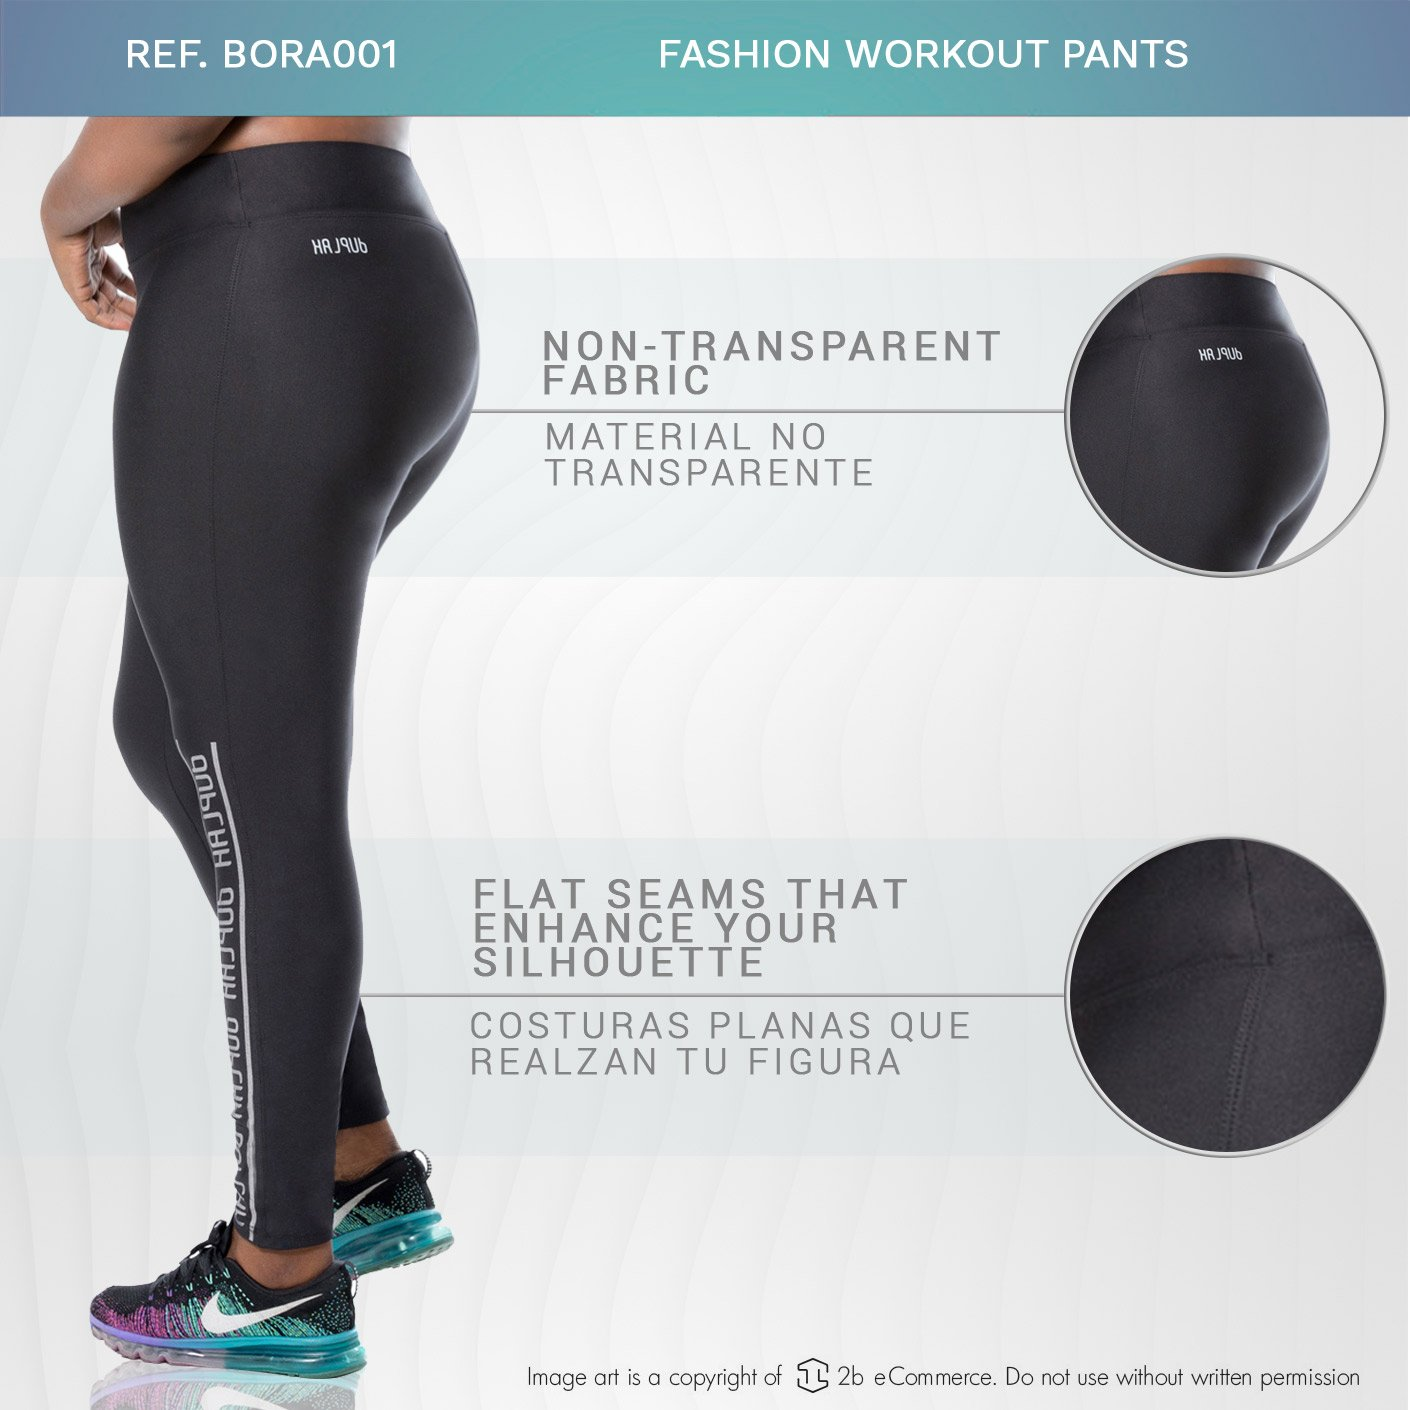 Duplah Bora Bora Womens Fashion Workout Pants Plus Size ...